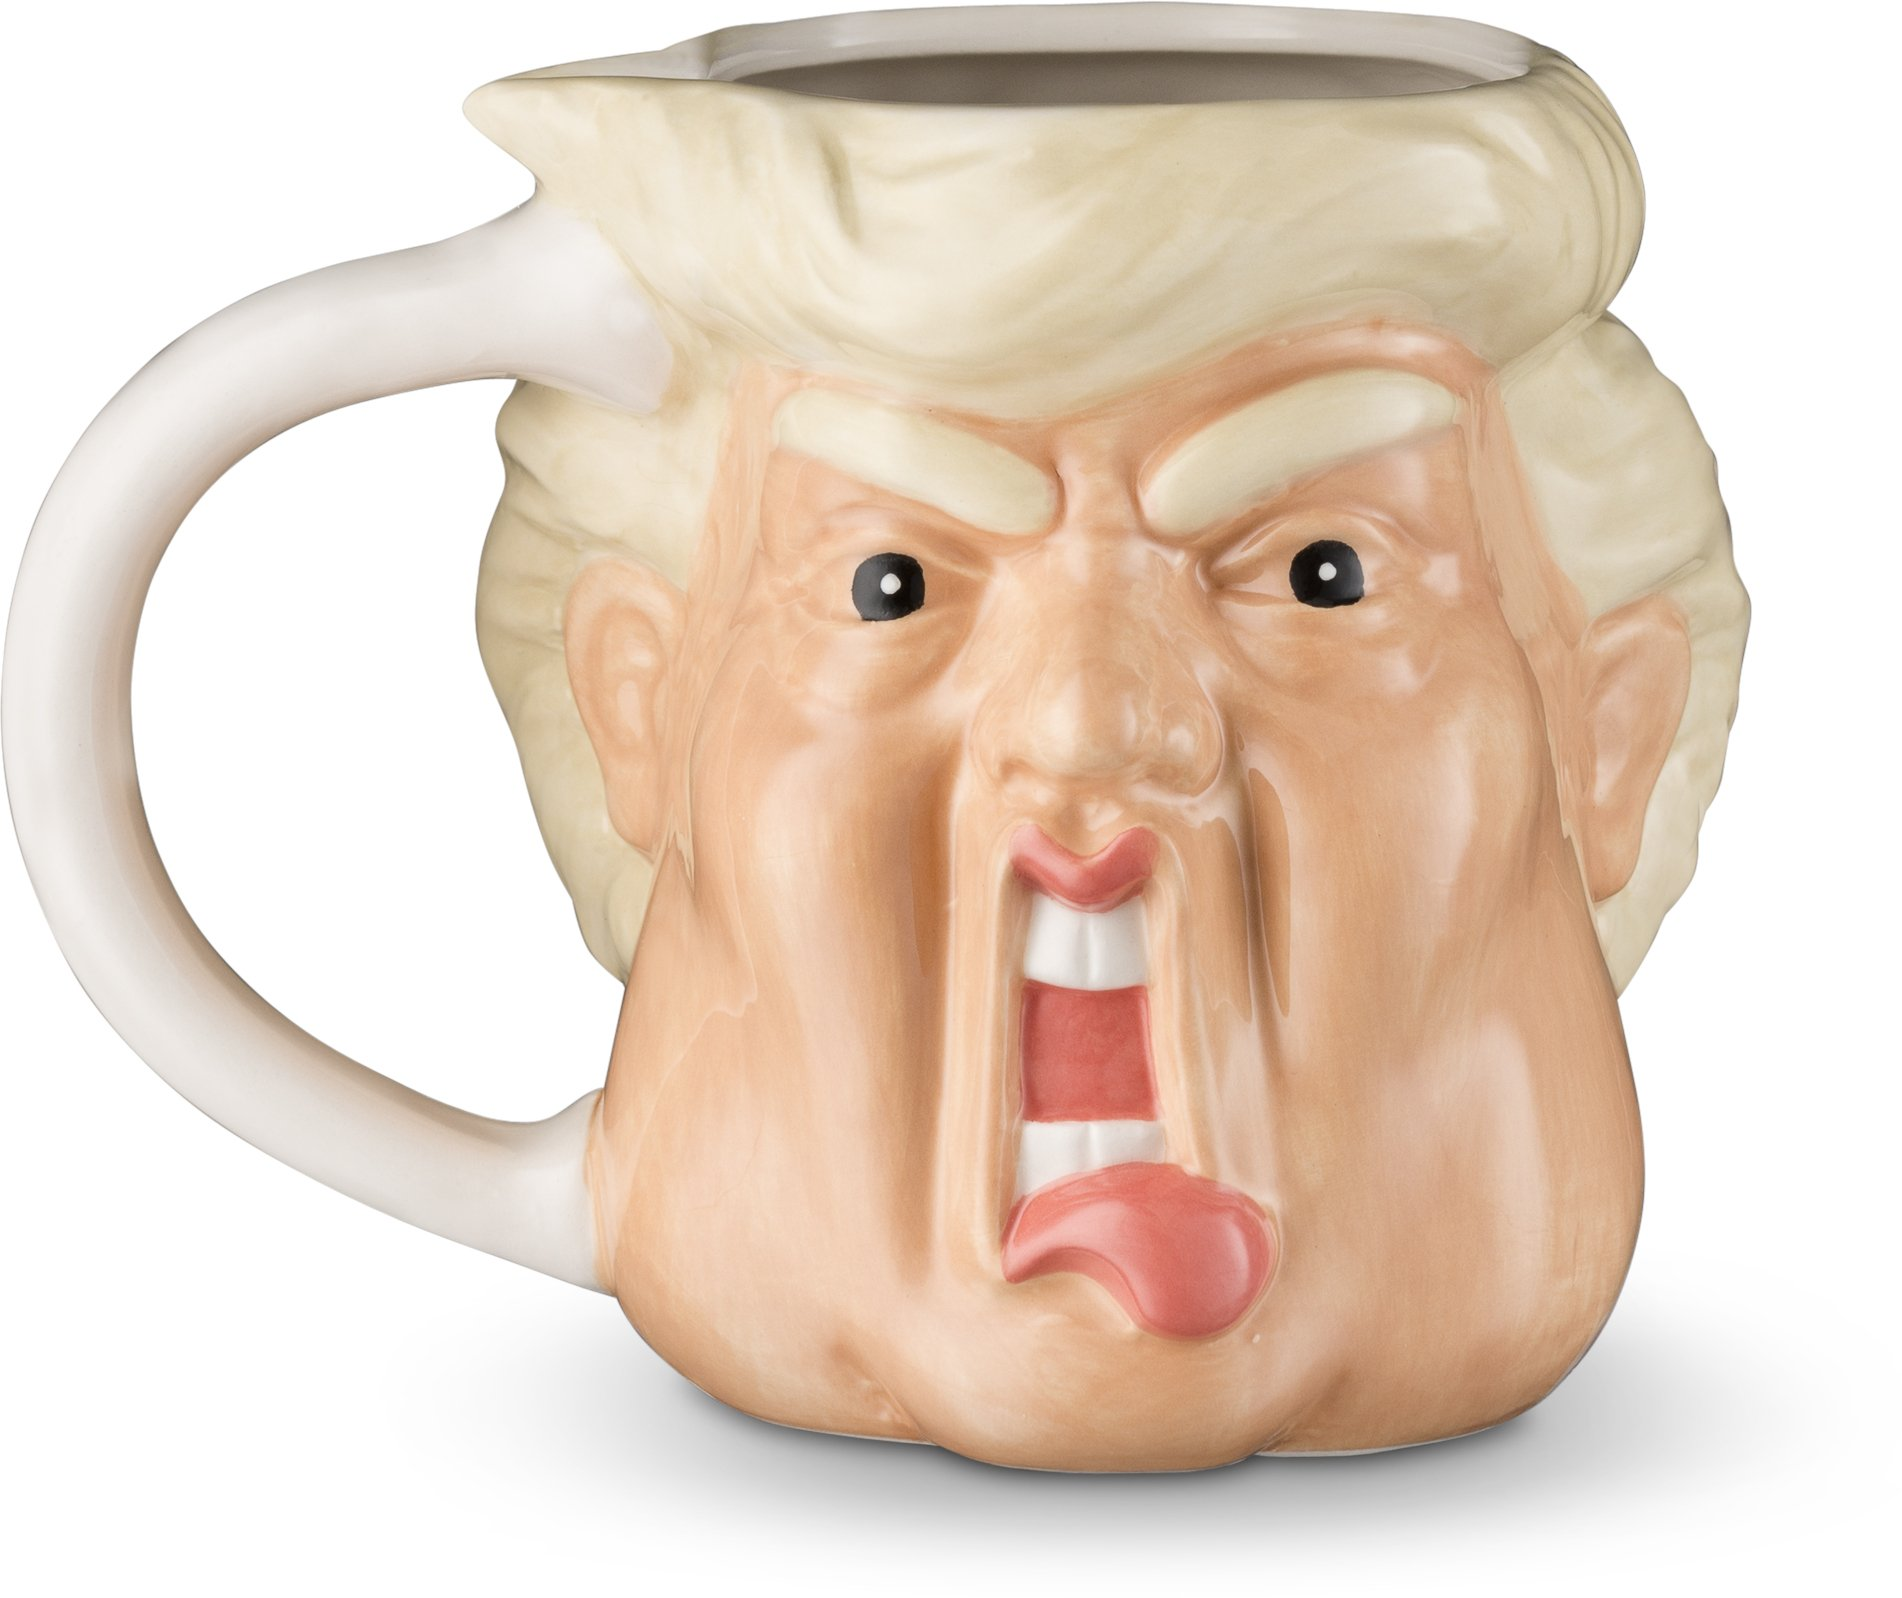 Decodyne Donald Funny Novelty Mug – 18 Oz – Hand Painted Donald Trump Face Shape Ceramic Coffee Mug